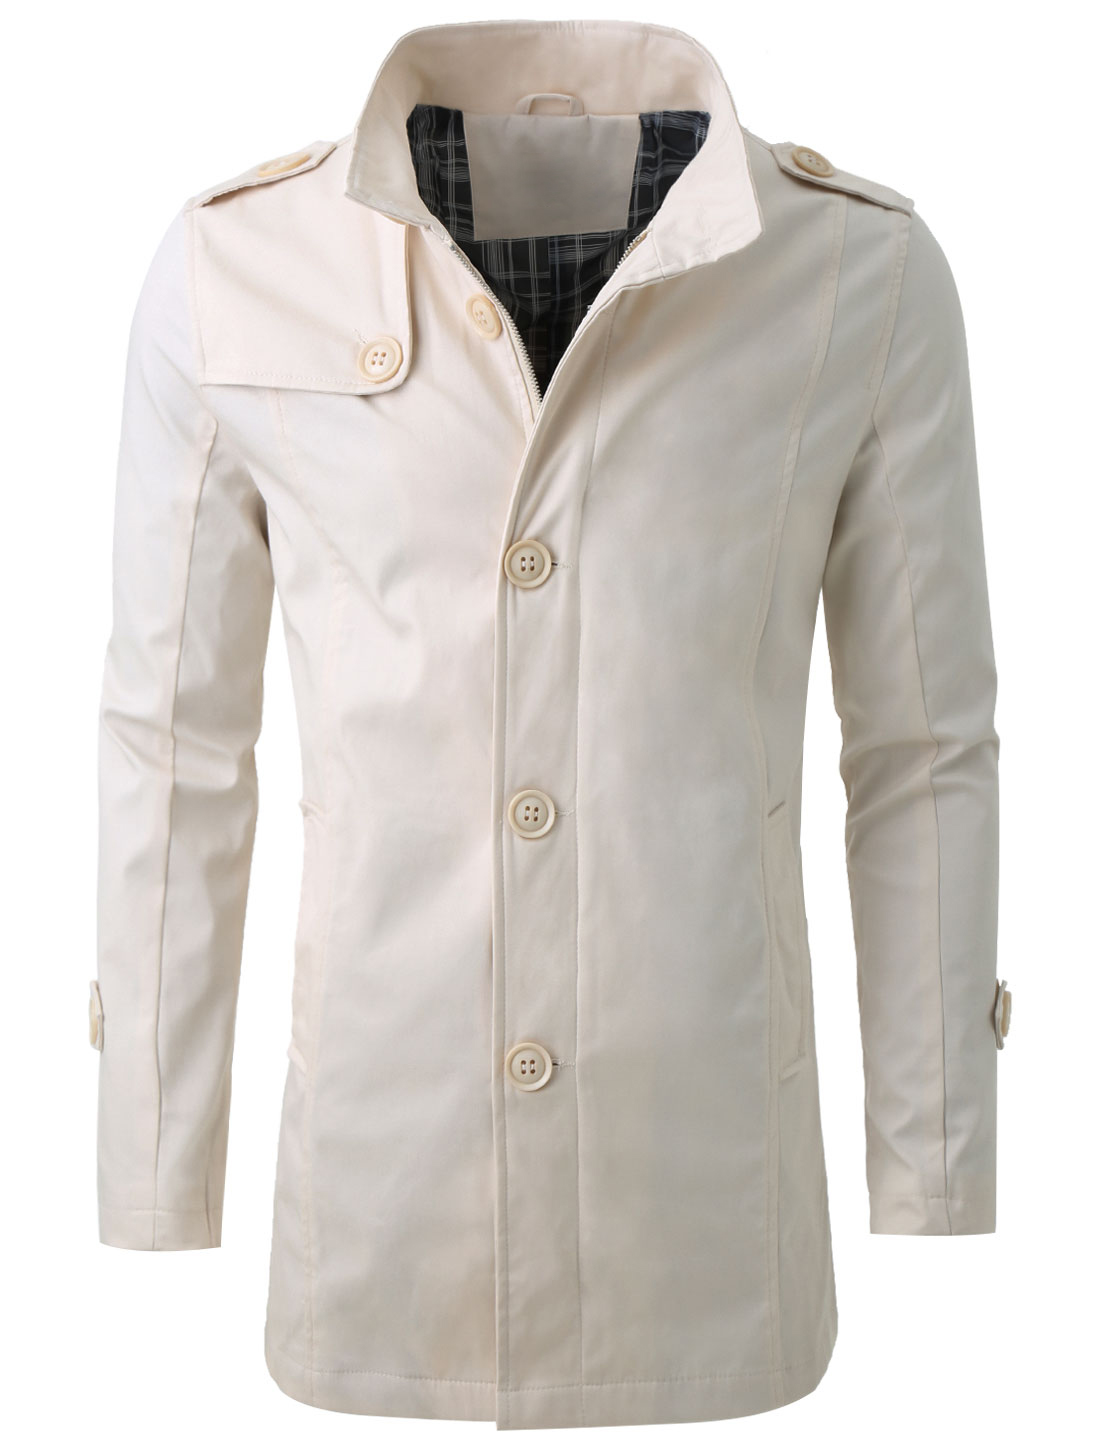 Mens Stand Collar Inside Pocket Design Stylish Beige Trench Coat M